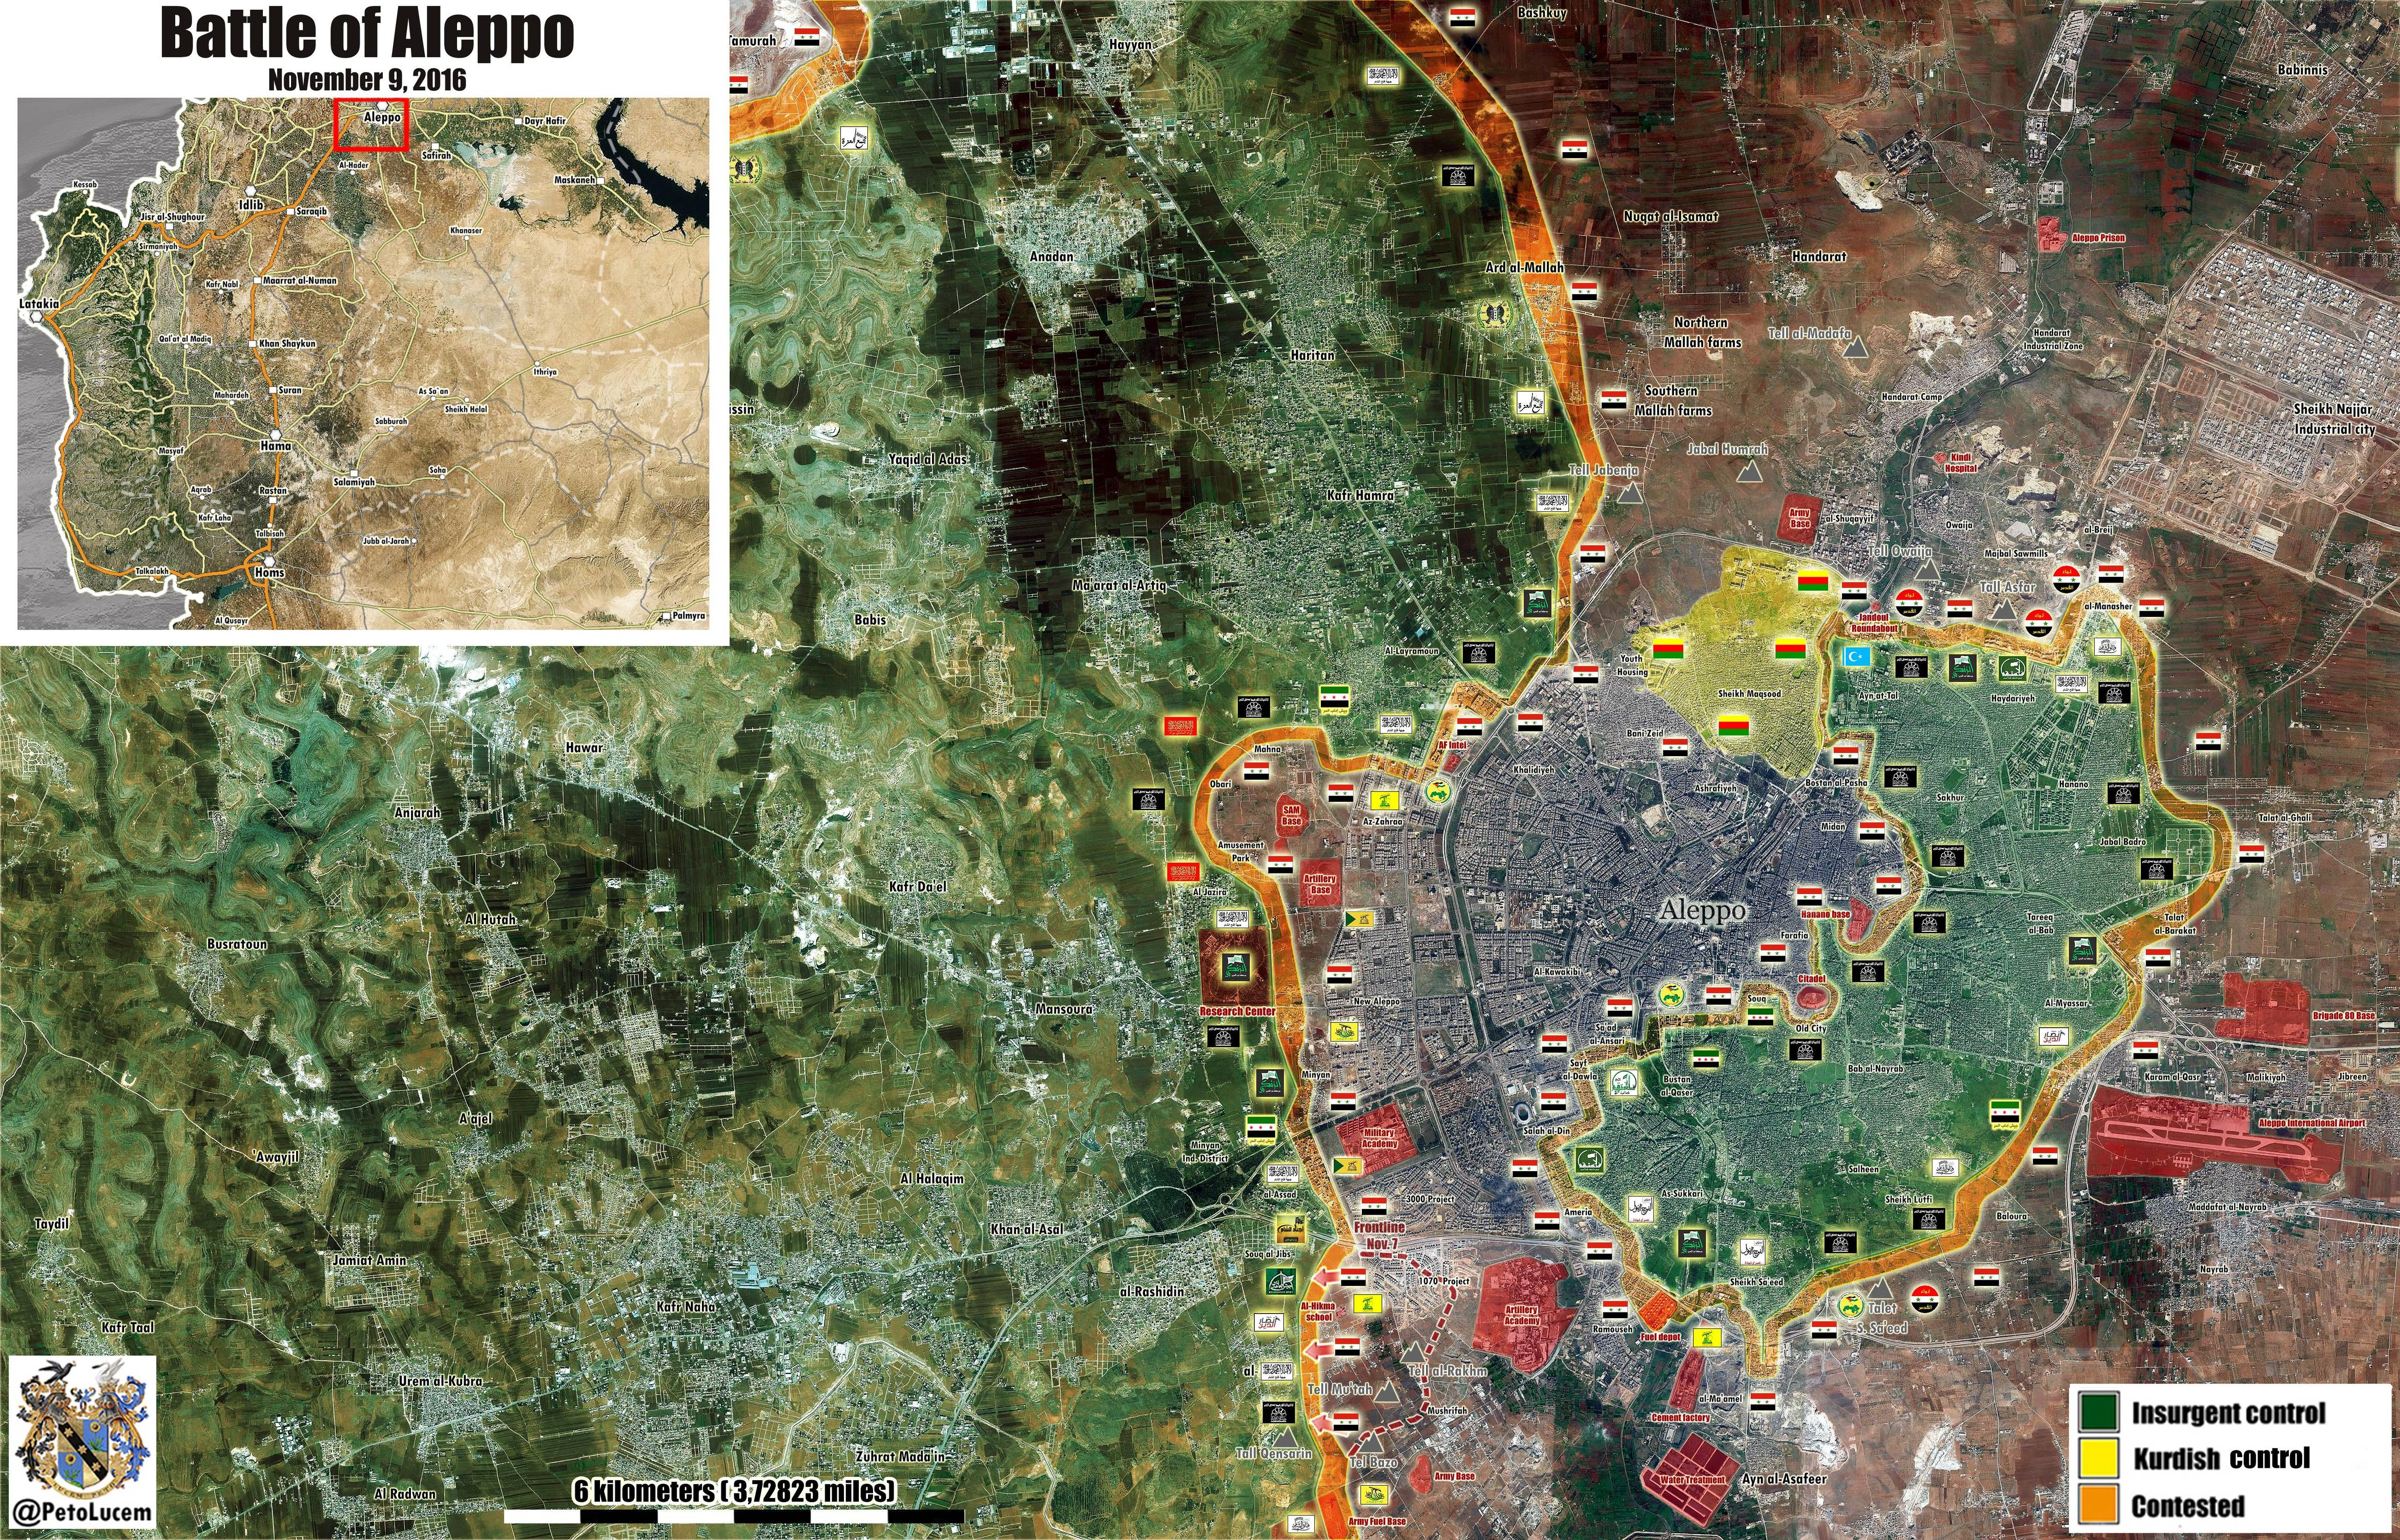 Syrian War Map Update: General Look at Military Situation in Aleppo City on November 9, 2016